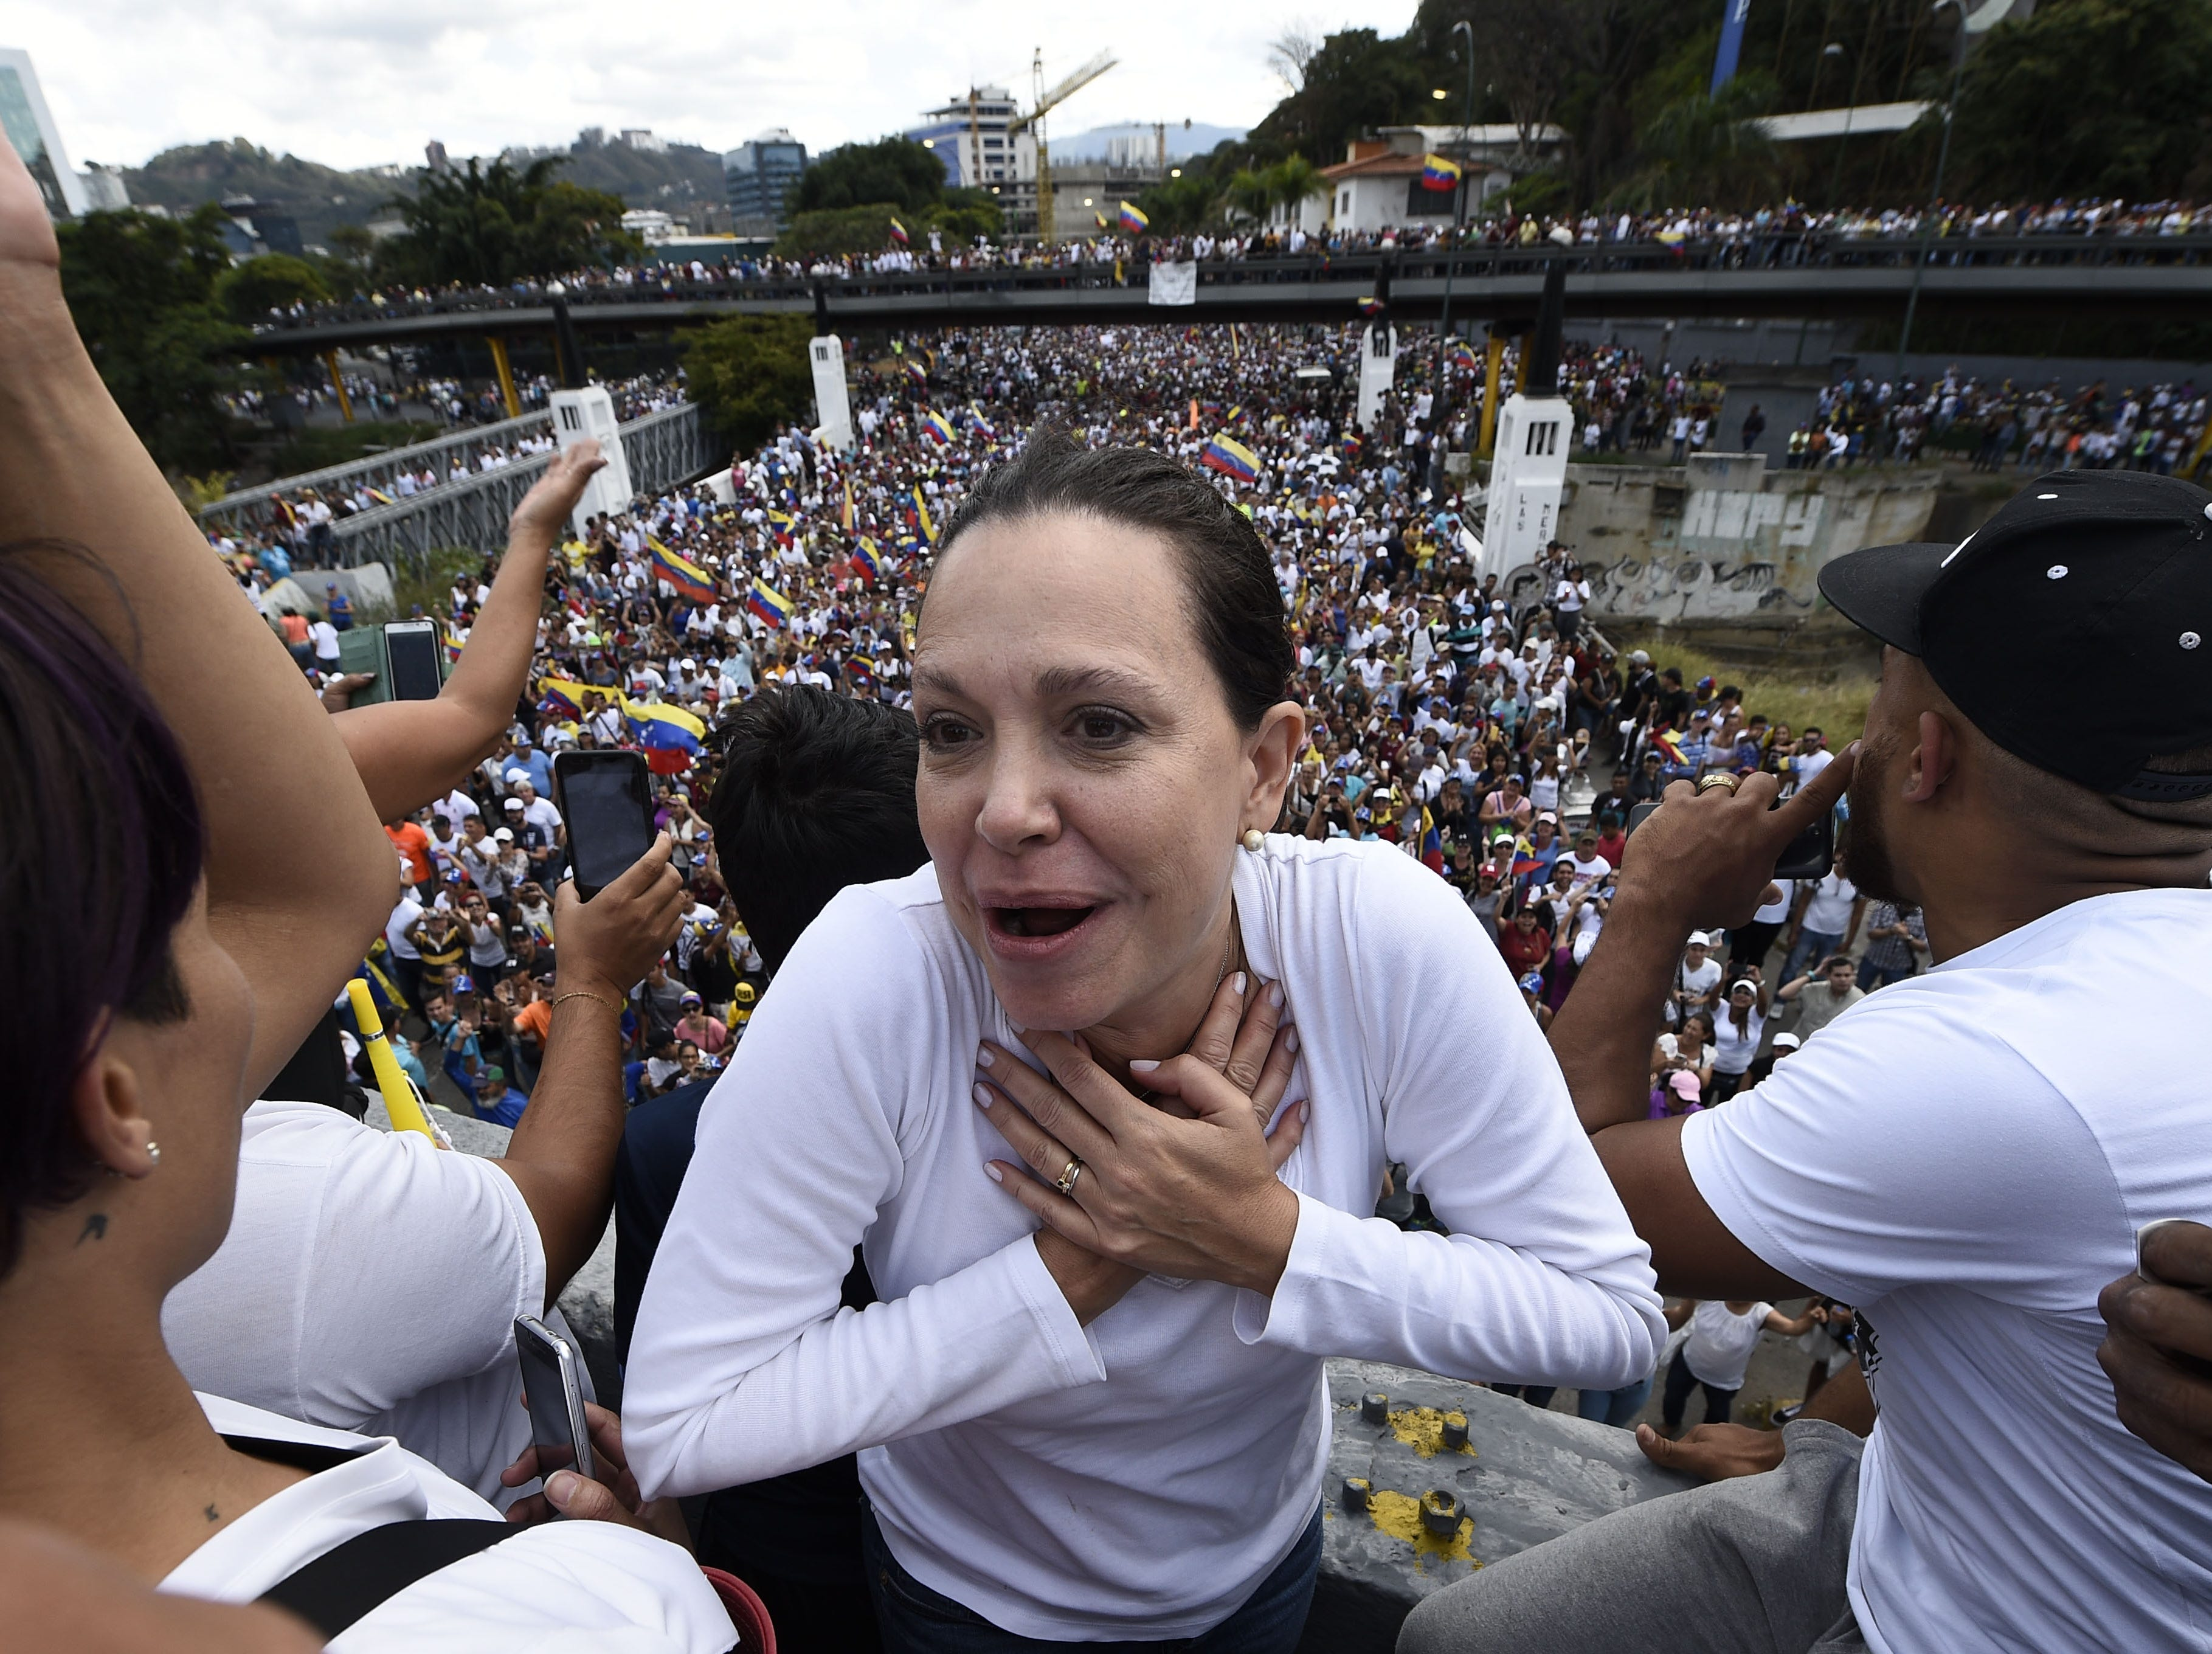 Venezuela's radical opposition leader Maria Corina Machado gestures during a gathering with Venezuelan opposition leader Juan Guaido and thousands of supporters, in Caracas on Feb. 2, 2019. Tens of thousands of protesters were set to pour onto the streets of Caracas to back self-proclaimed acting president Guaido's calls for early elections as international pressure increased on President Nicolas Maduro to step down. Major European countries have set a Sunday deadline for Maduro to call snap presidential elections.